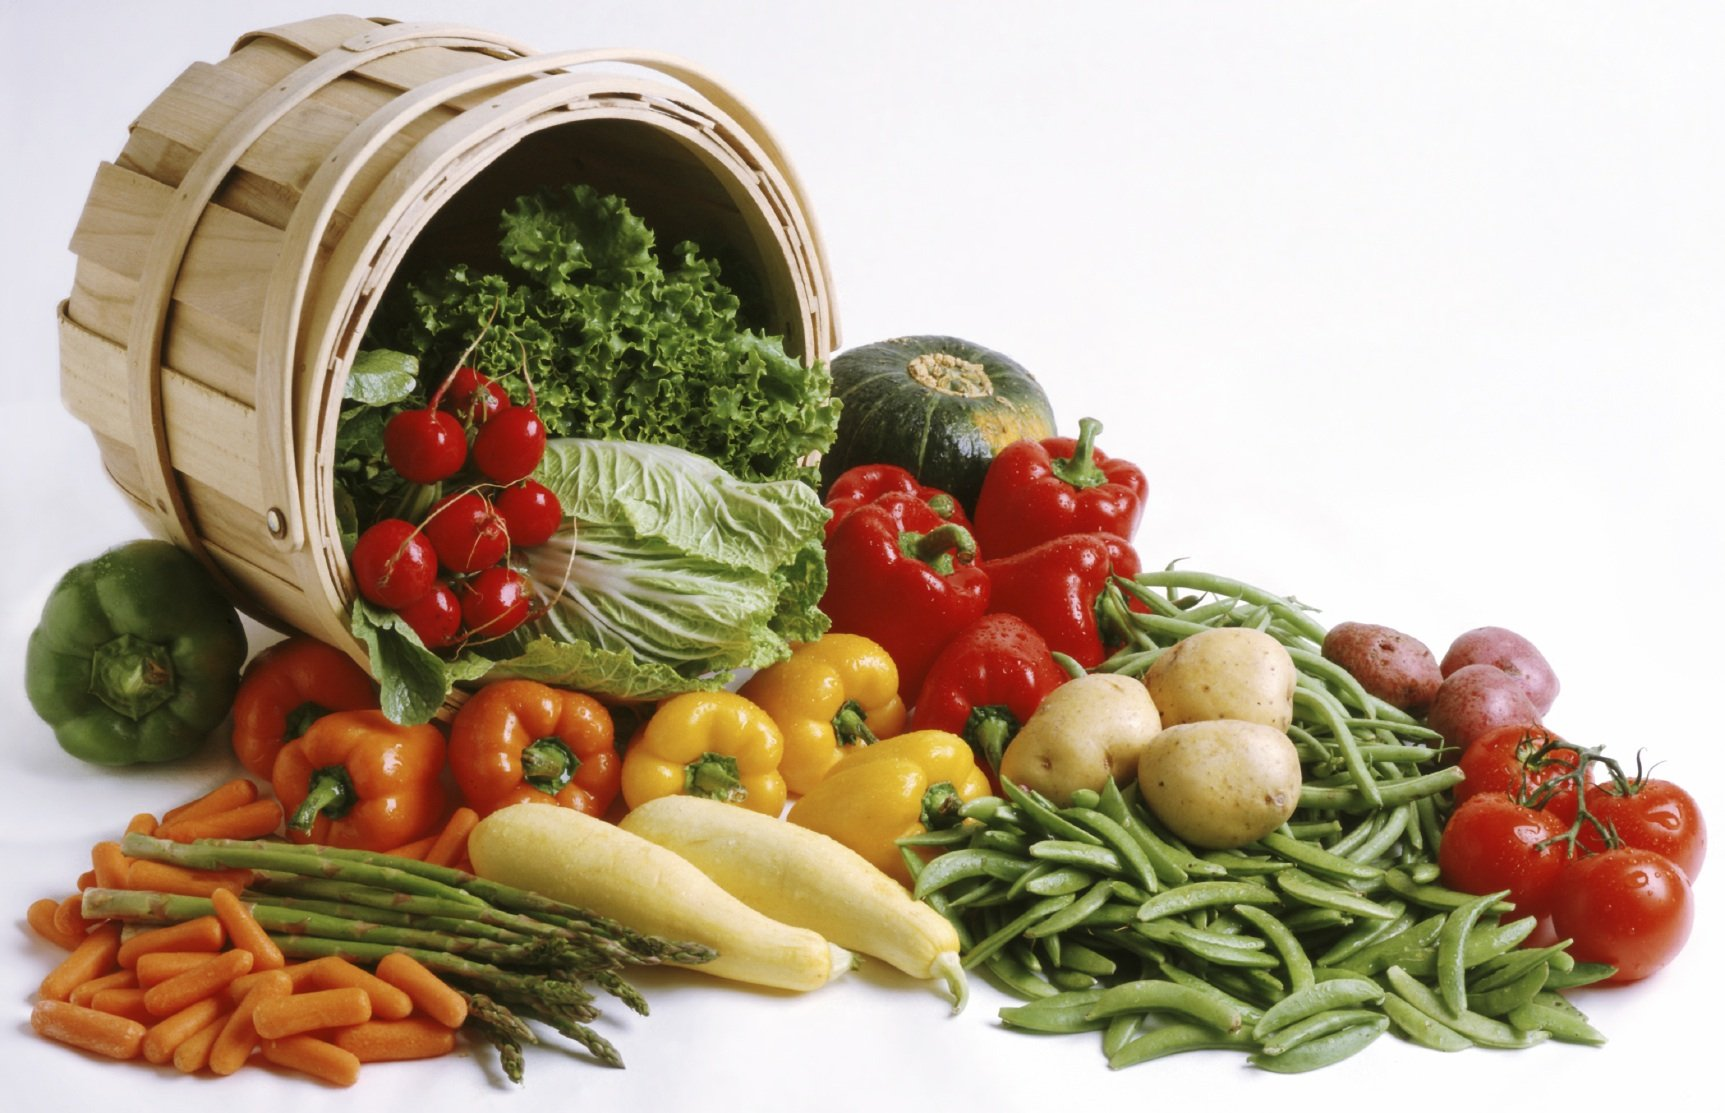 Vegetables Big Culprit in Food Illness - HealnCure